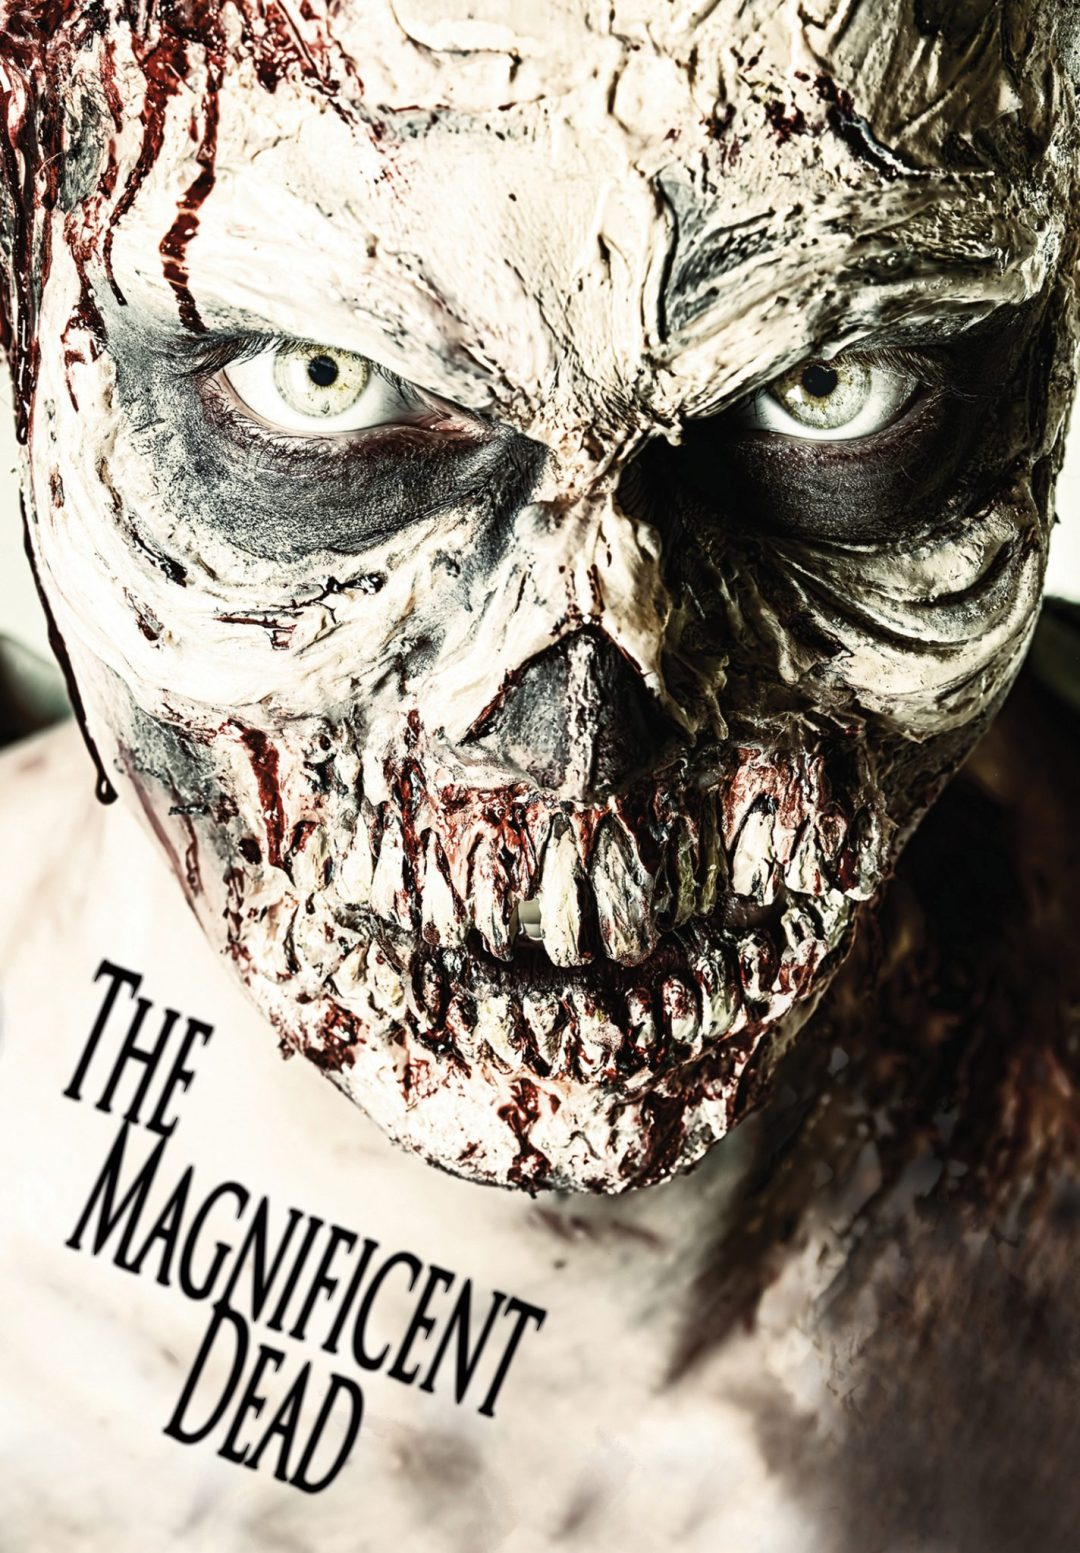 'The Magnificent Dead' Comes to Blu-ray, DVD, and VOD Worldwide via SGL Entertainment